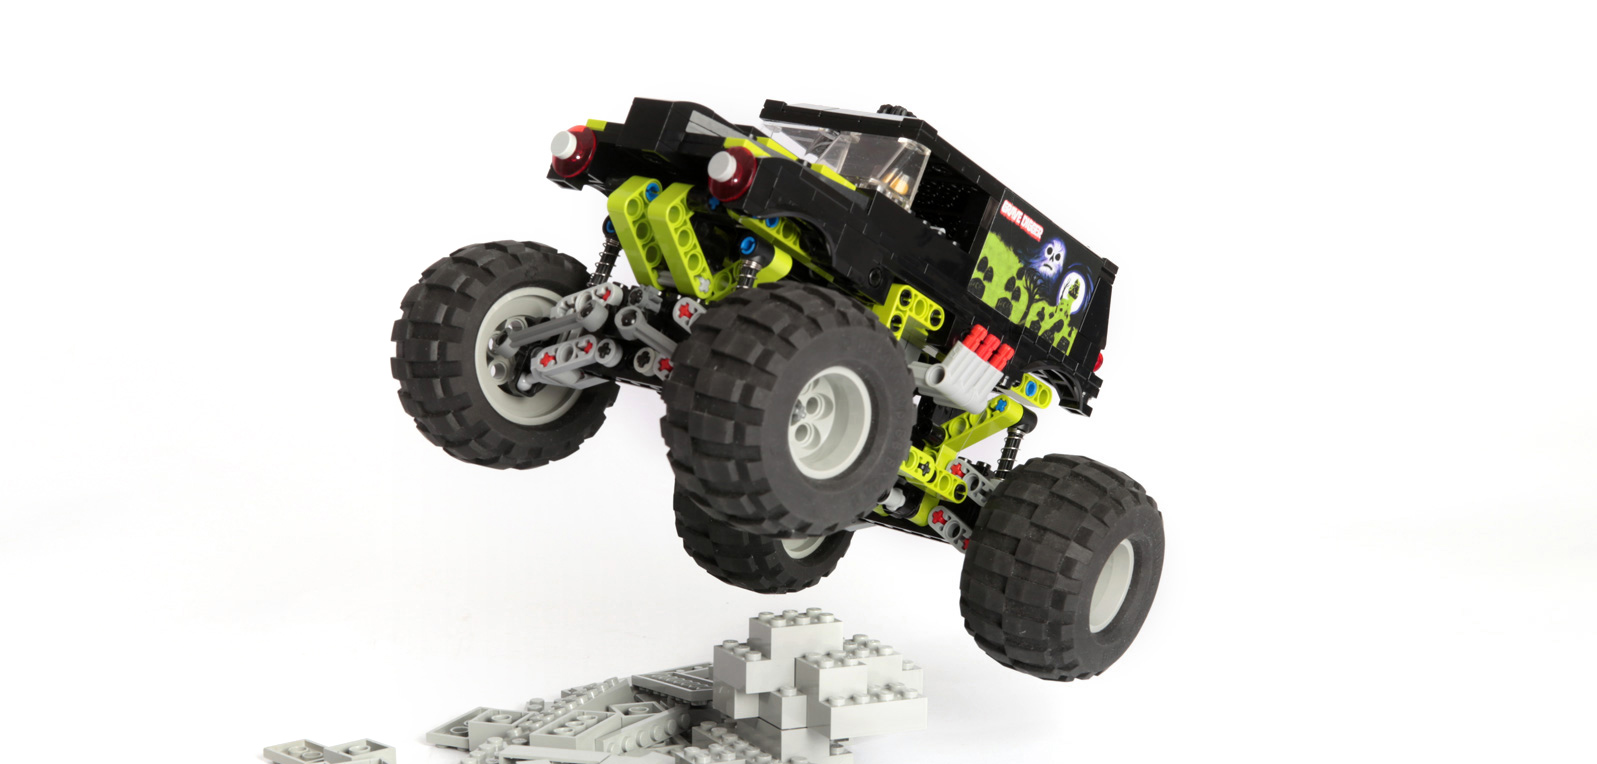 Monstertrucks (Modelle Gäste)